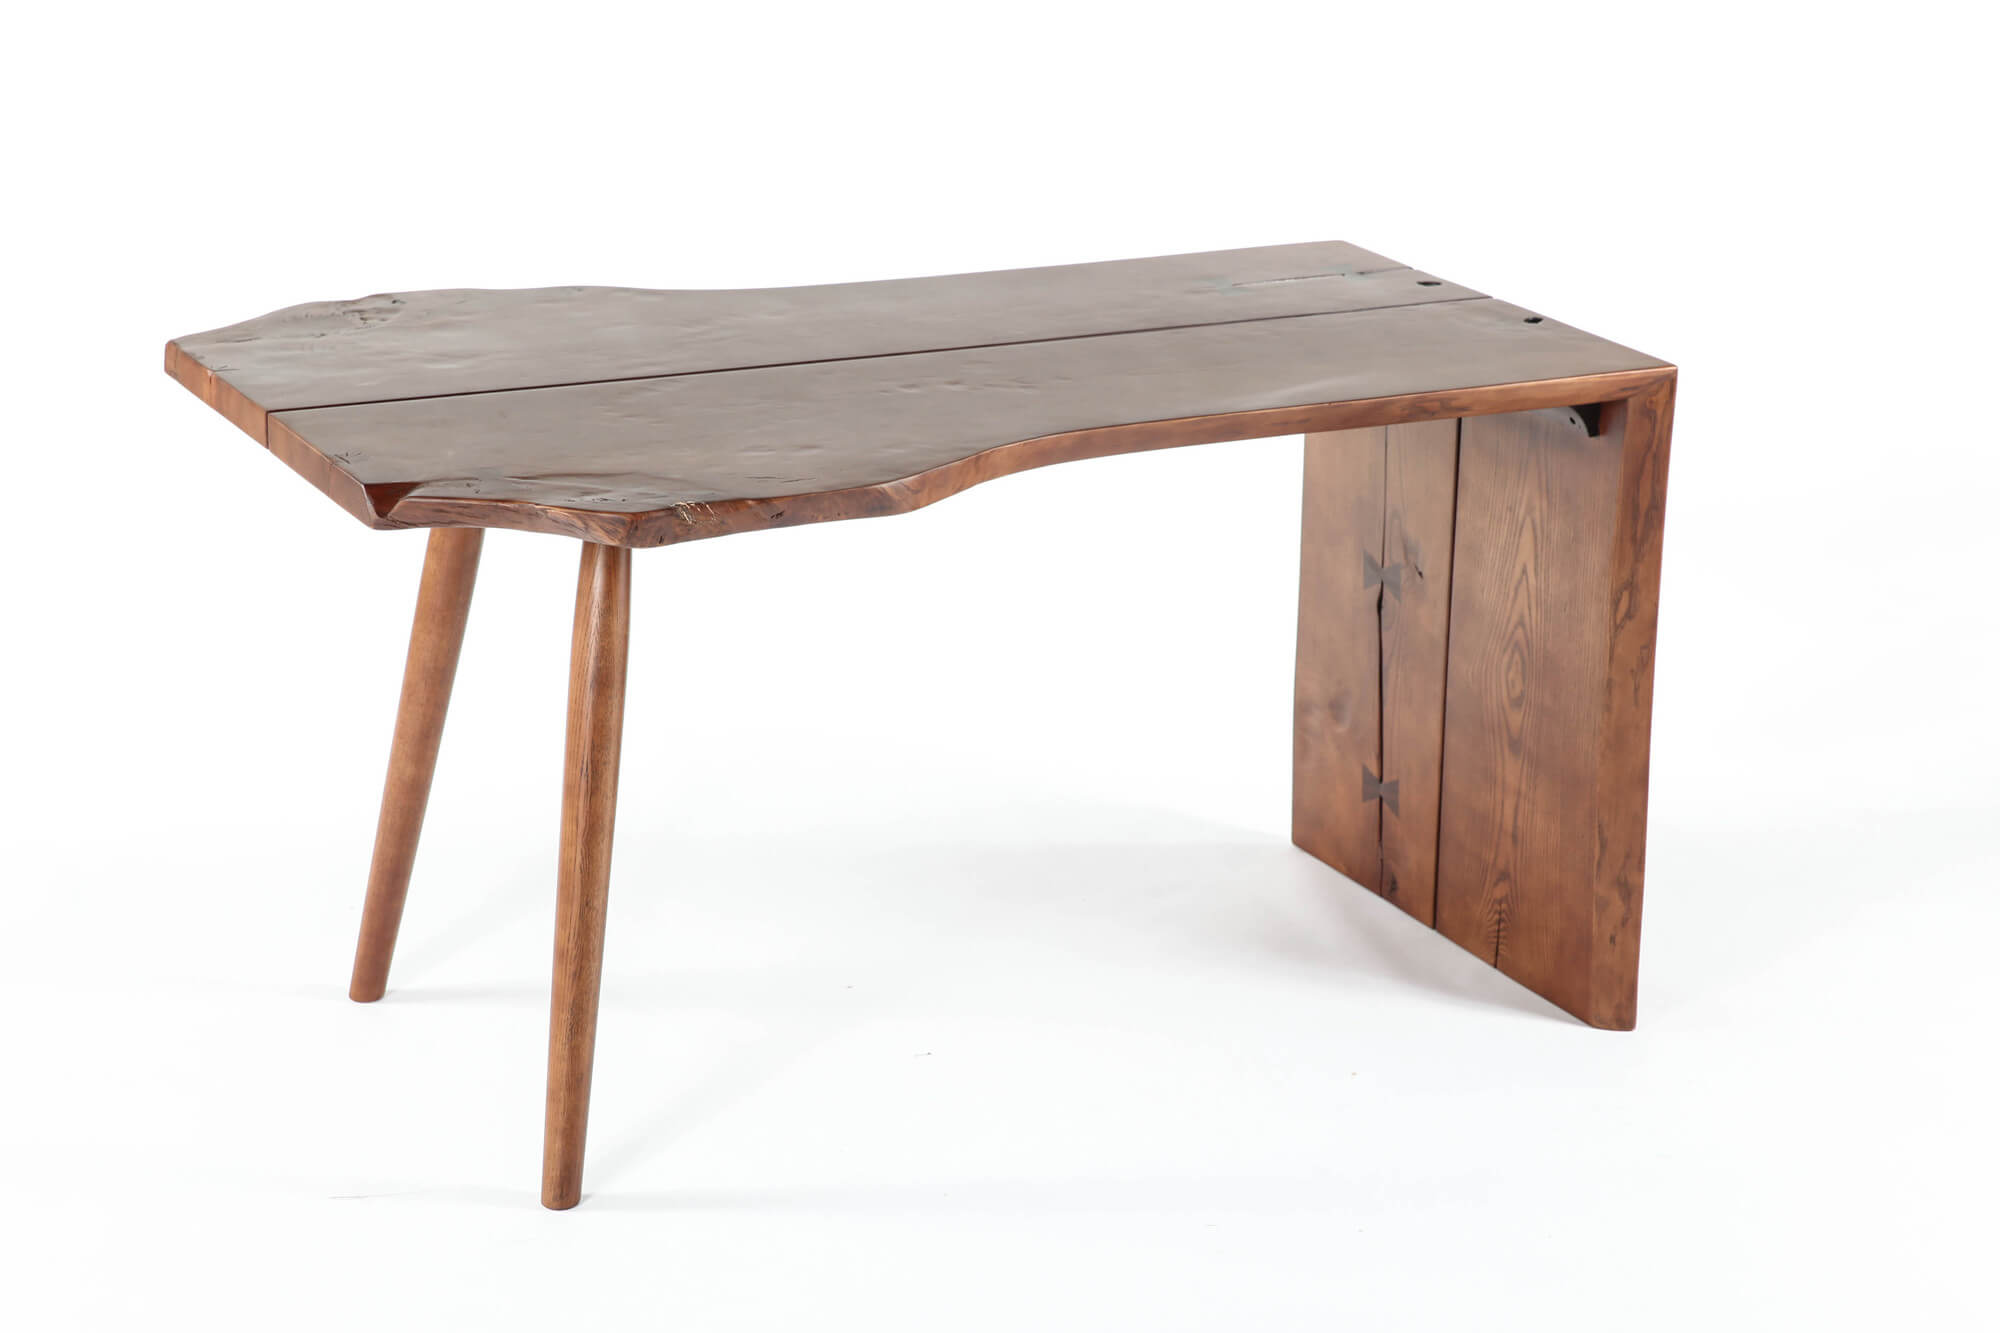 The idea of freeform design is that there is no concrete definition. This category comprises any tables that do not fit within standard shapes. Our first example stands in a rotated L-shape, with a pair of standard legs supporting opposite a full slab.